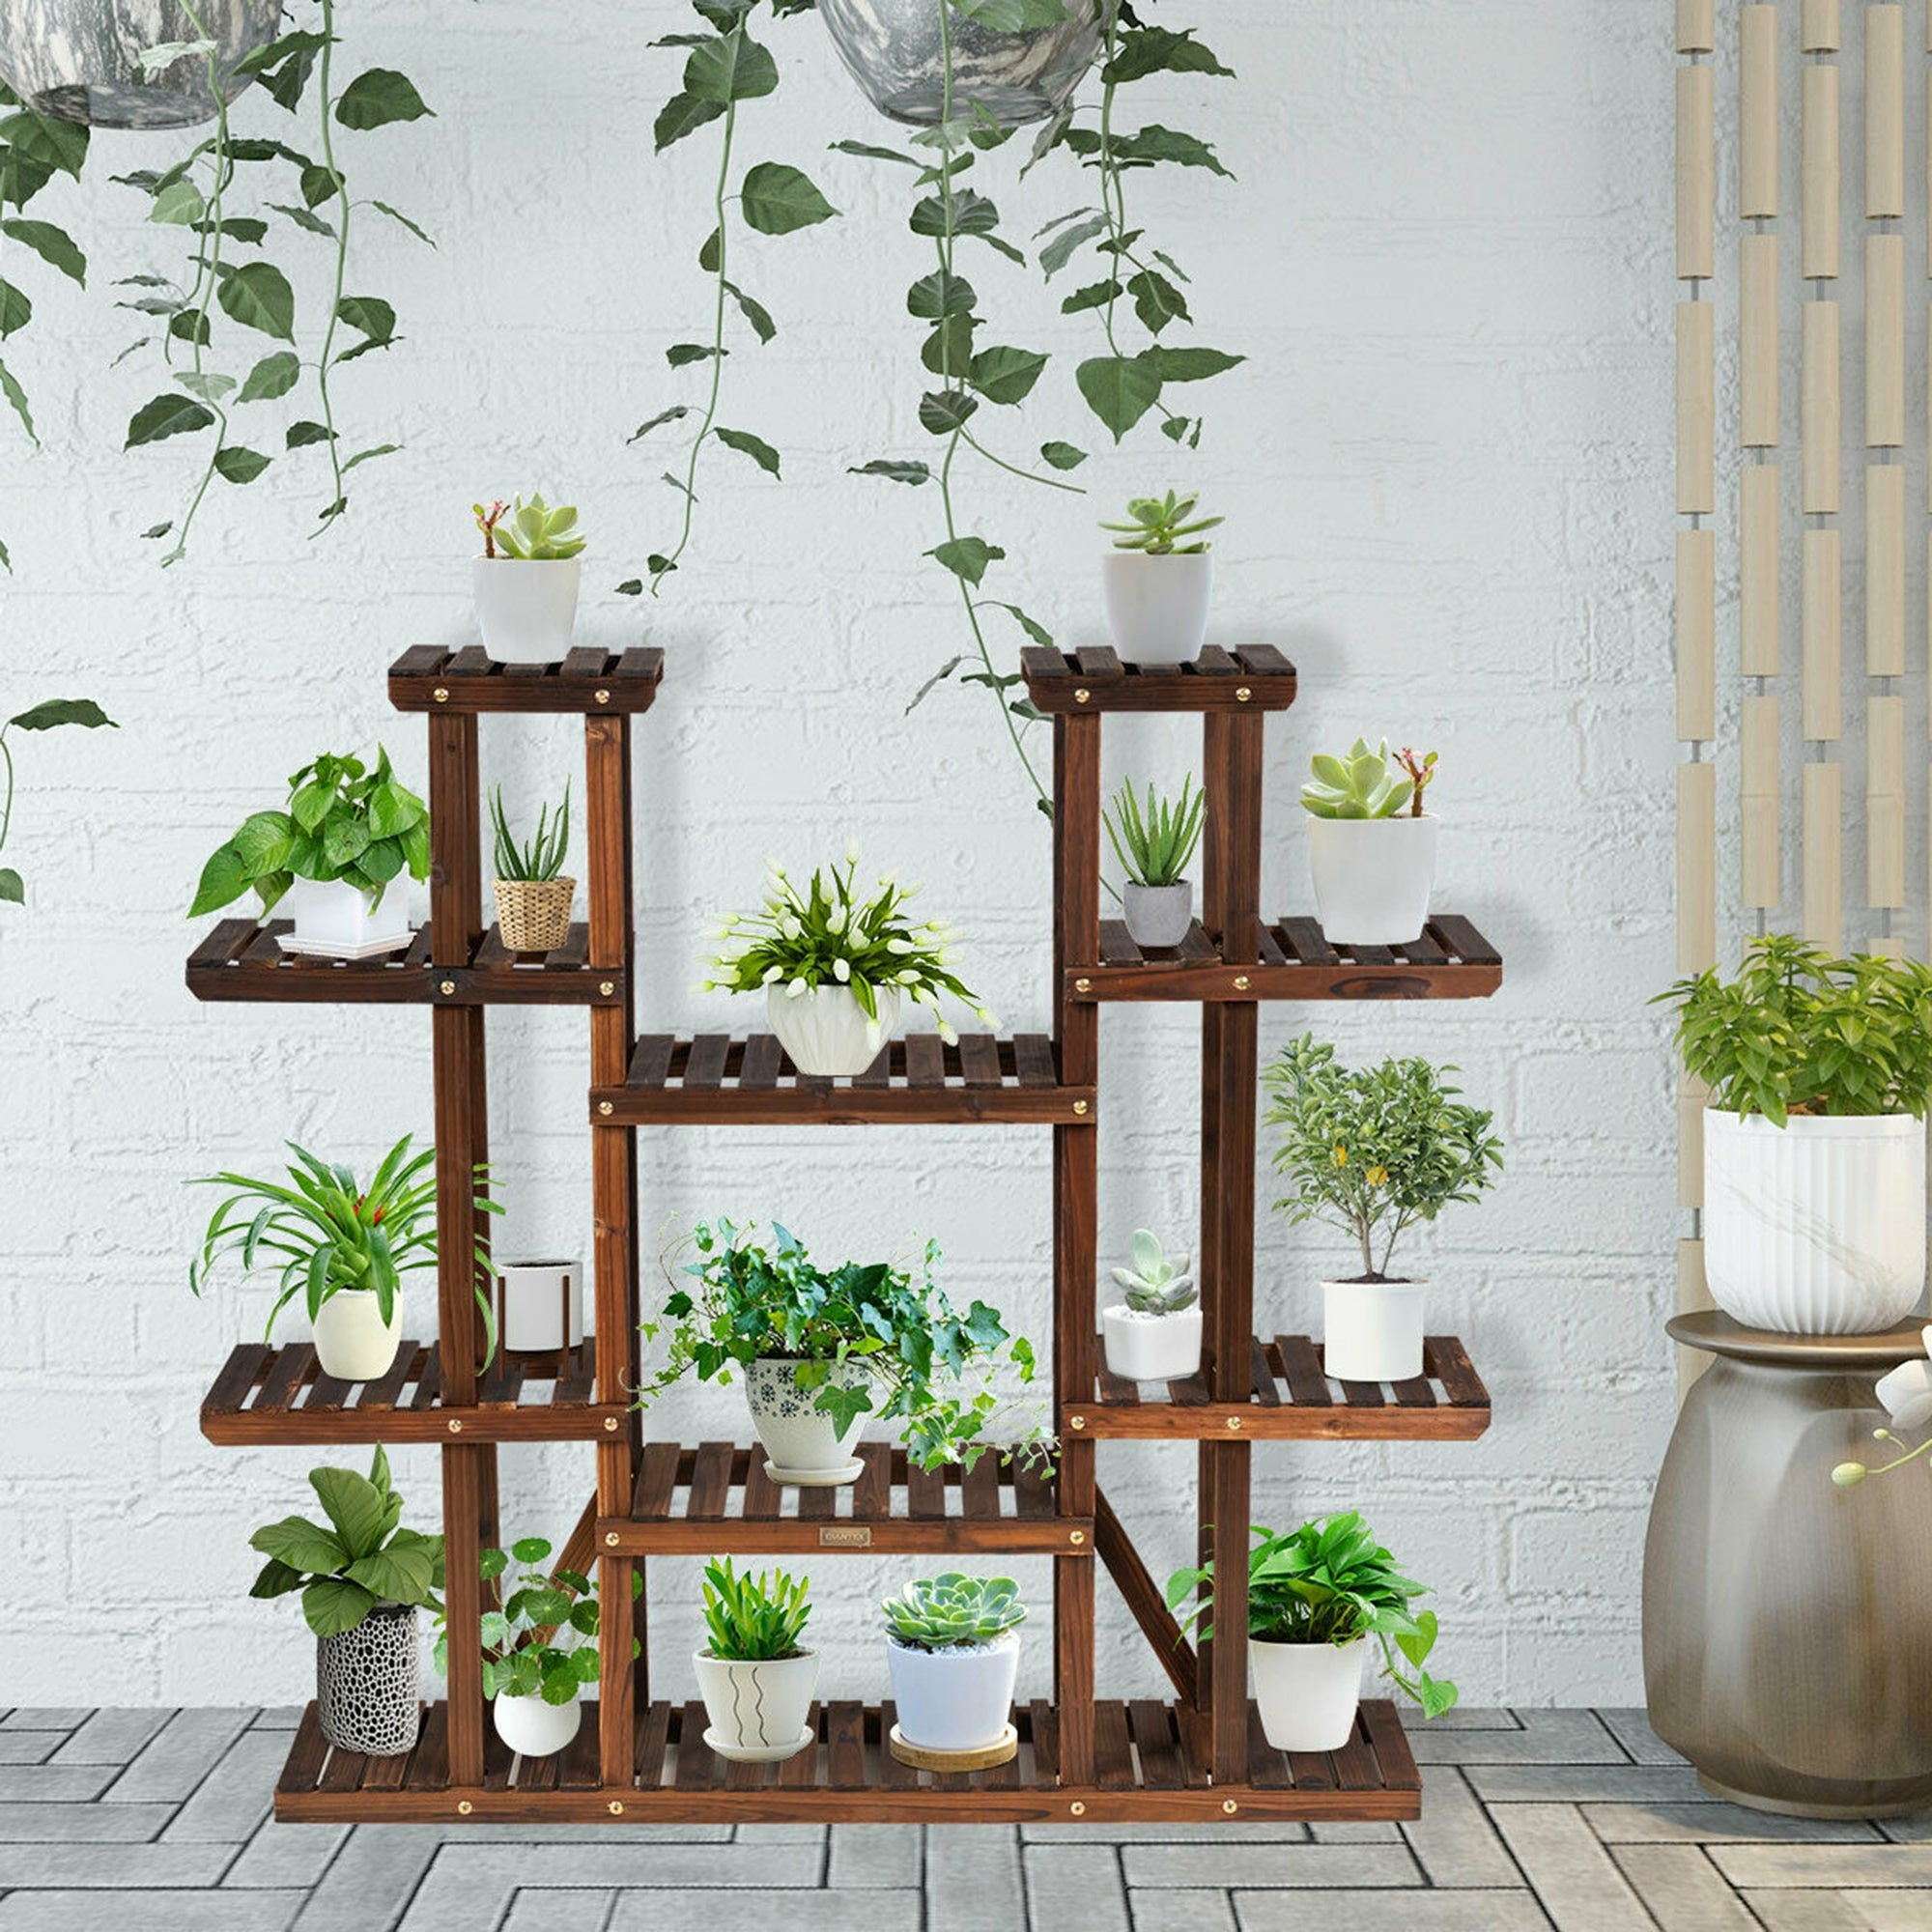 Gymax 16 Tier Wood Plant Stand 16'' High Carbonized 16 Potted Flower   16''  x 16'' x 16'' L x W x H